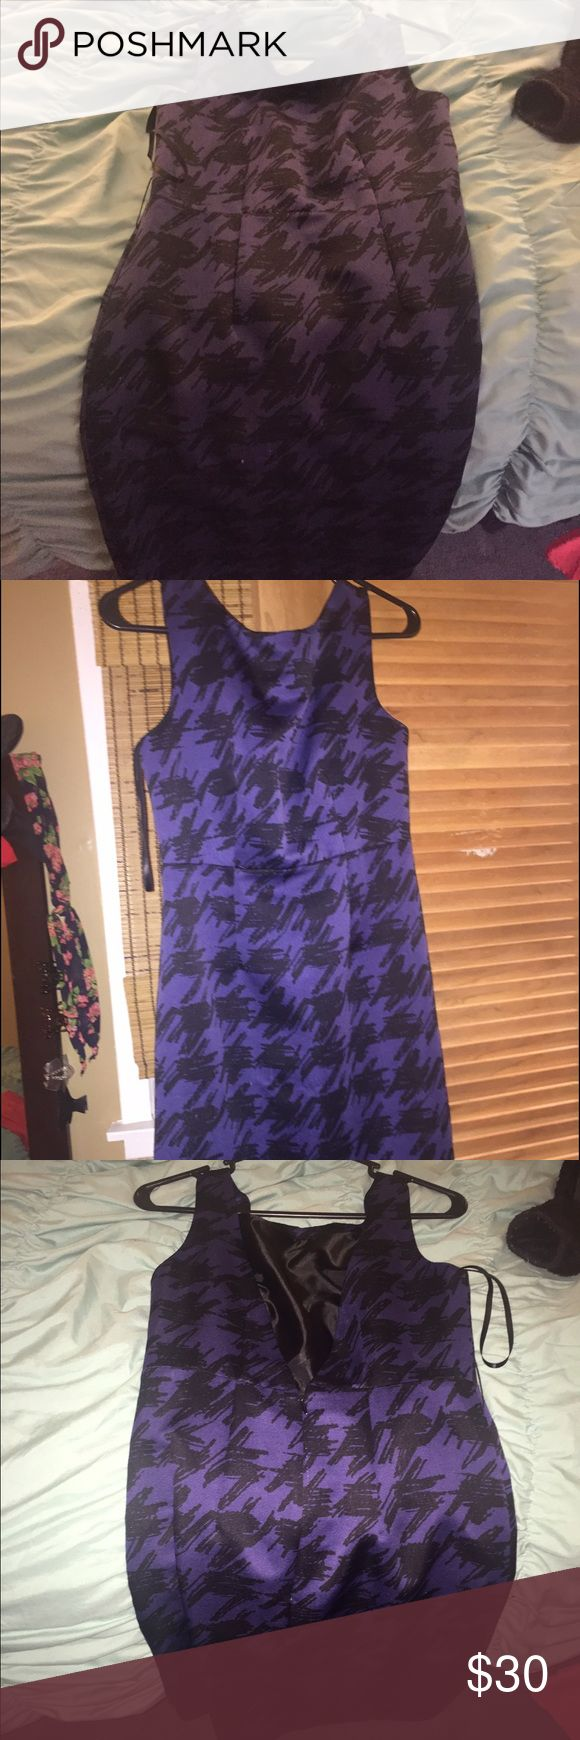 Perfect purple dress for semi casual Low v back dress perfect for work. Never worn MAKE AN OFFER, MUST SELL!! Dresses